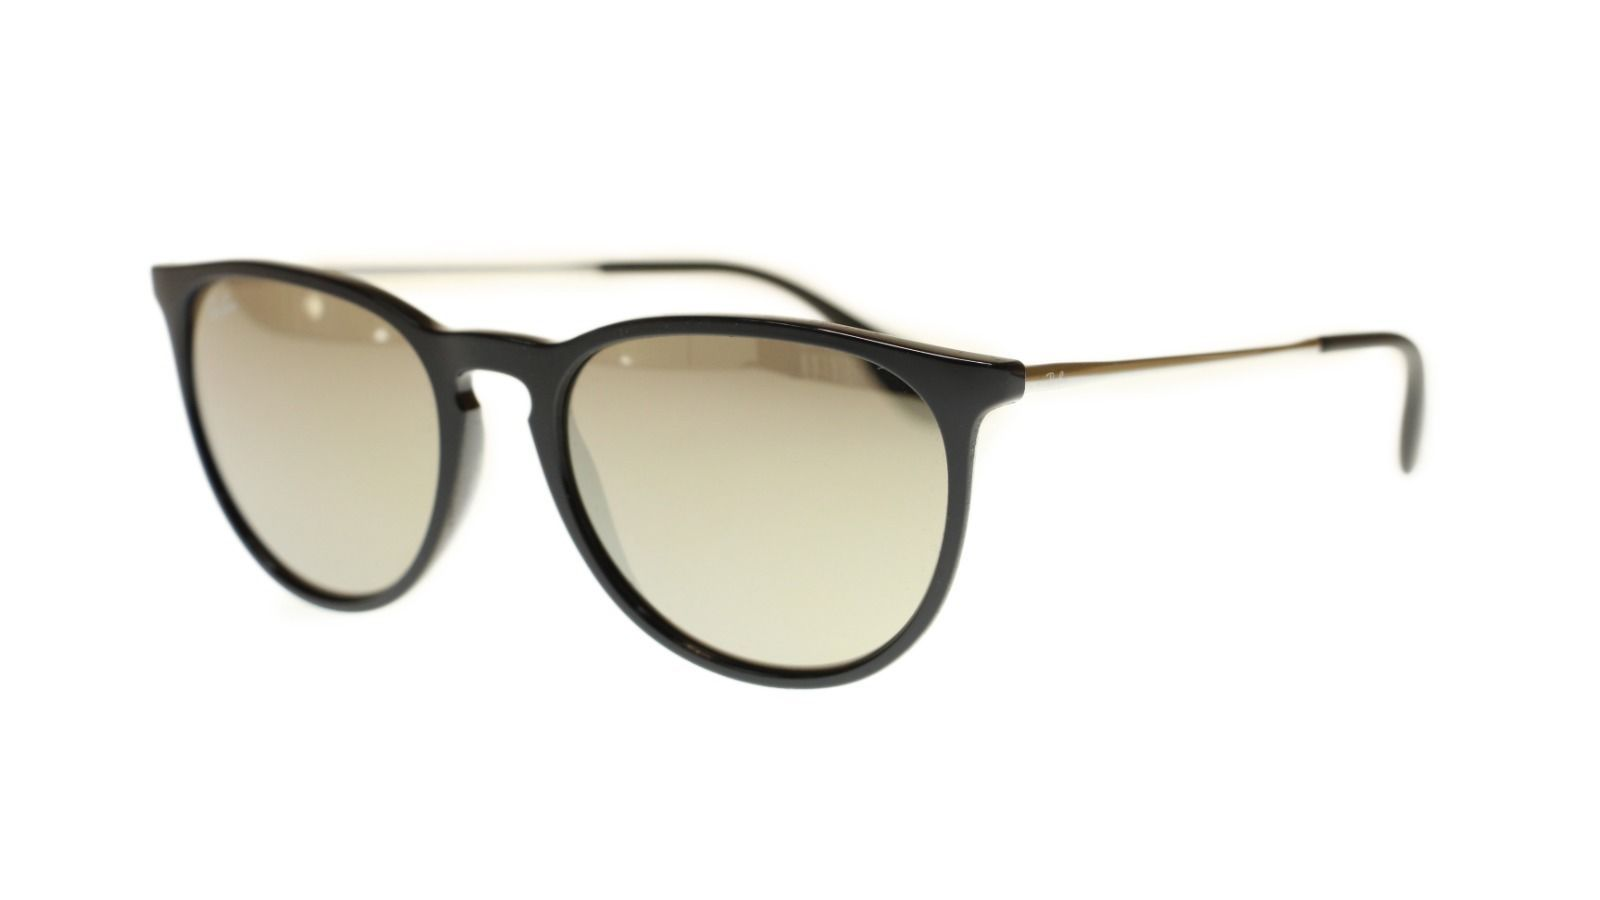 Ray Ban Men's Sunglasses RB4171 601/5A Black With Brown Lens Oval 54mm Authentic